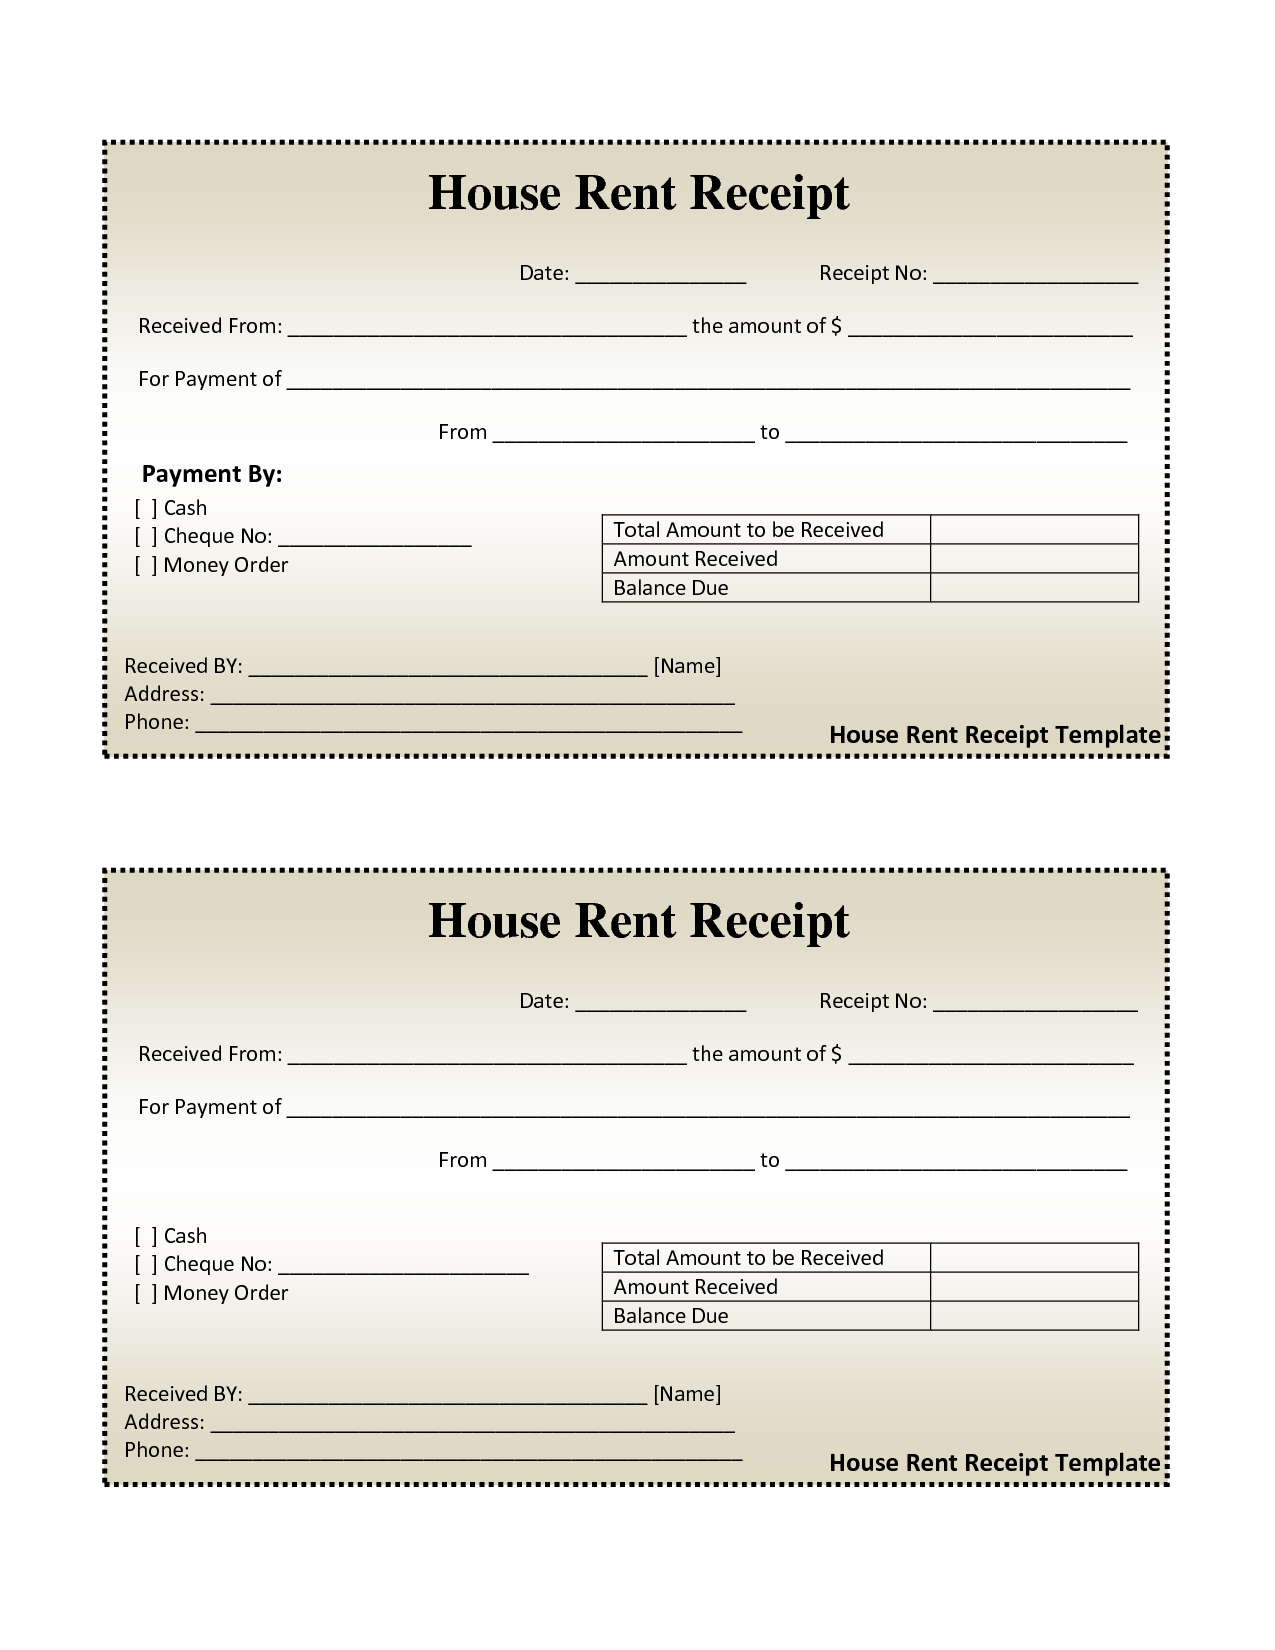 Invoice Template with Credit Card Payment Option and Free House Rental Invoice House Rent Receipt Template Doc